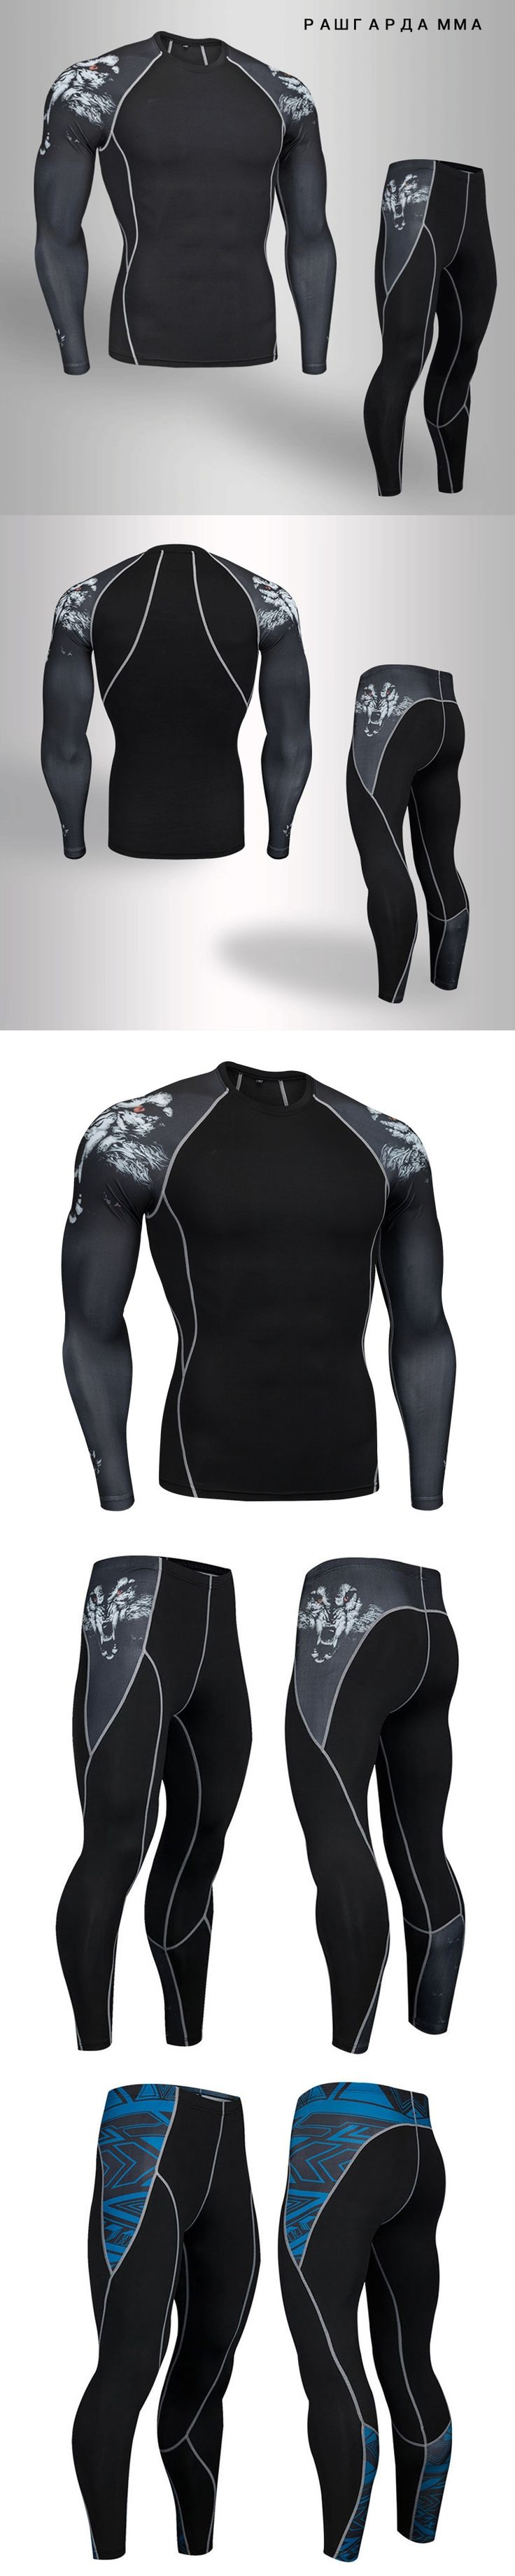 rash guard men 2017 winter 3D teen wolf set men compression clothing crossfit thermal underwear Men's fitness set MMA Clothing